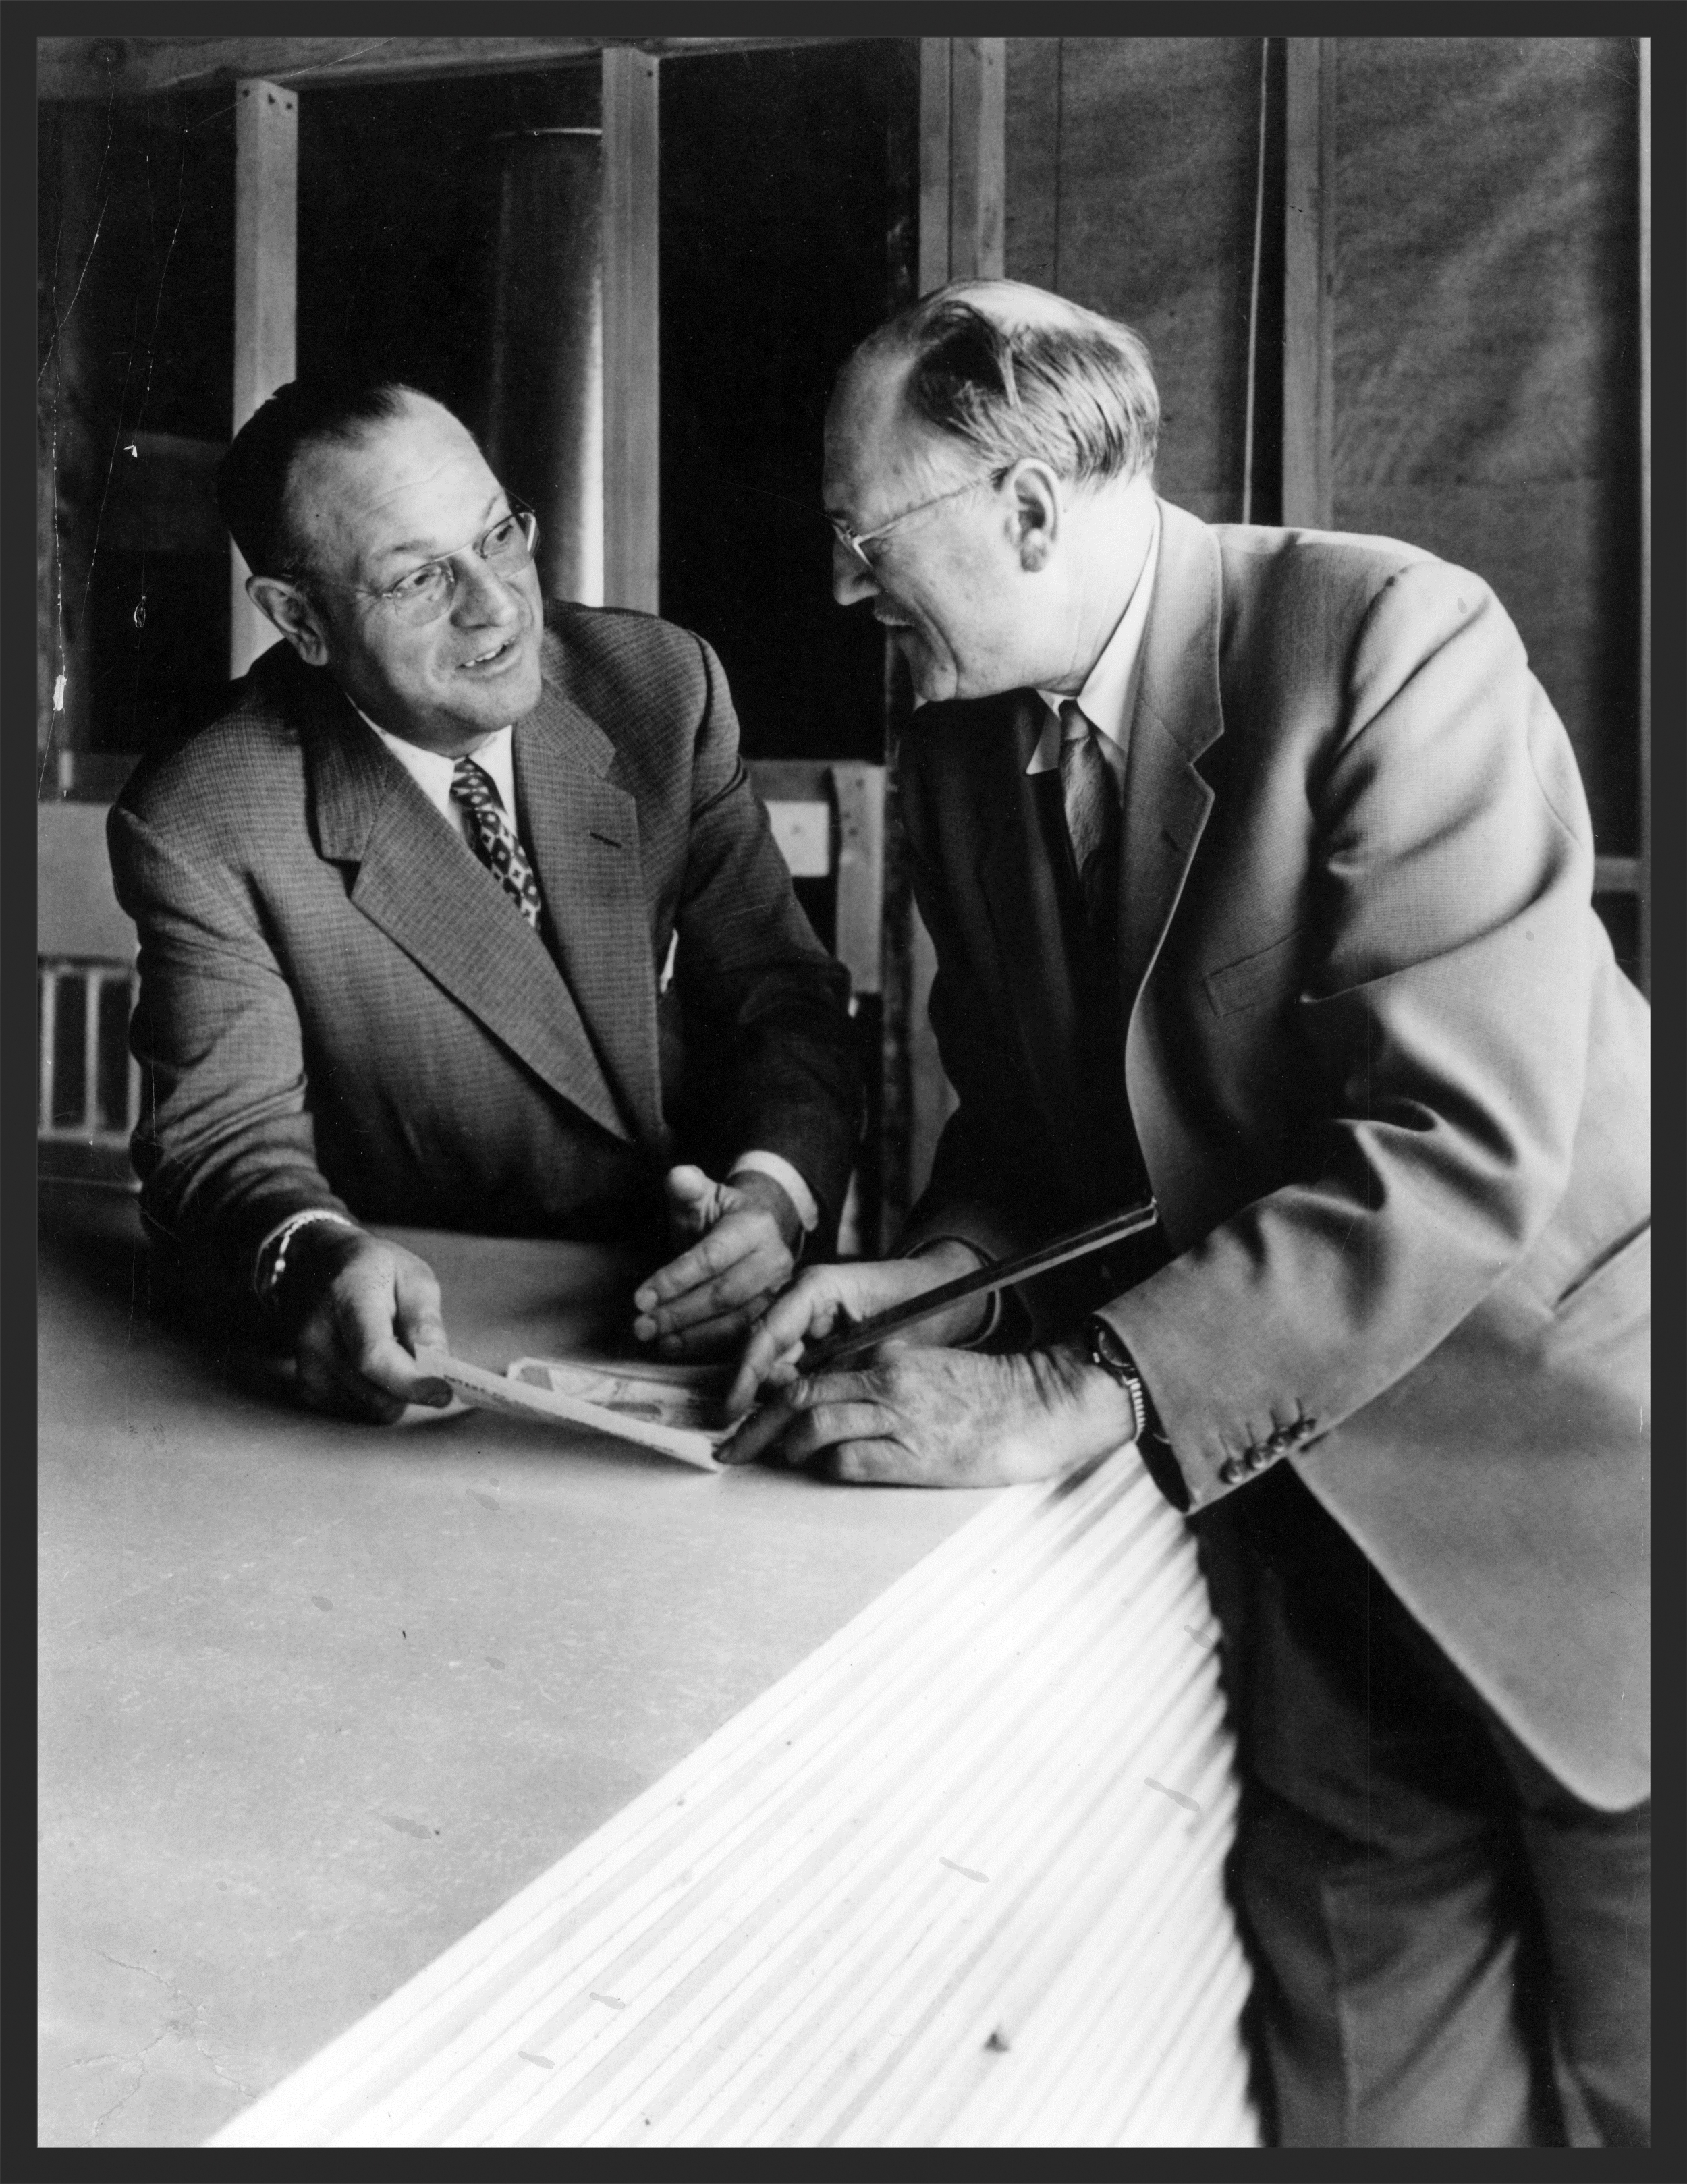 Carl and Fred Gellert   From The Fred Gellert Family Collection/San Mateo County History Museum